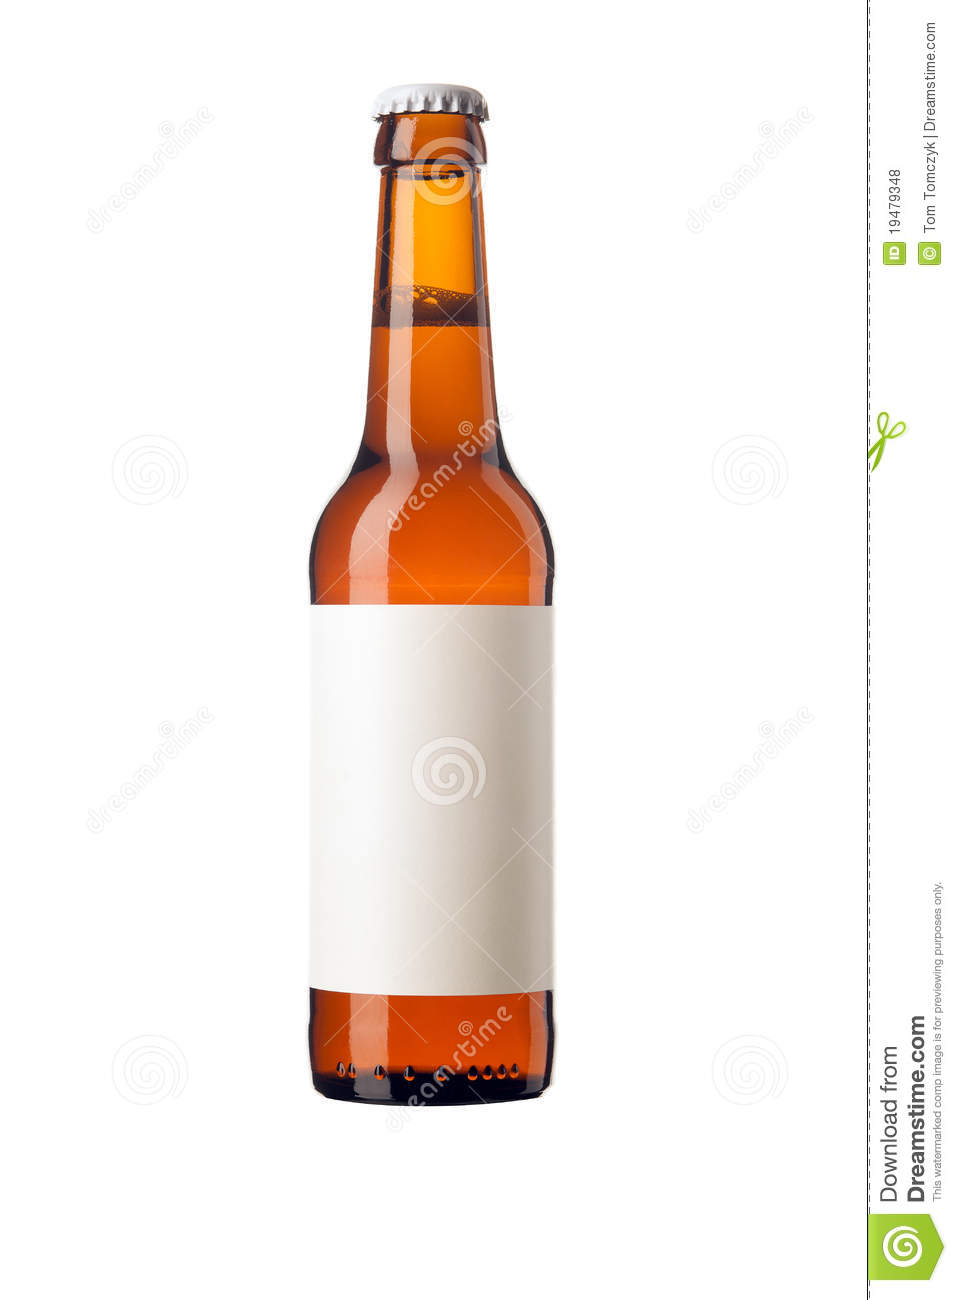 royalty free stock photos beer bottle with blank label image 19479348. Black Bedroom Furniture Sets. Home Design Ideas